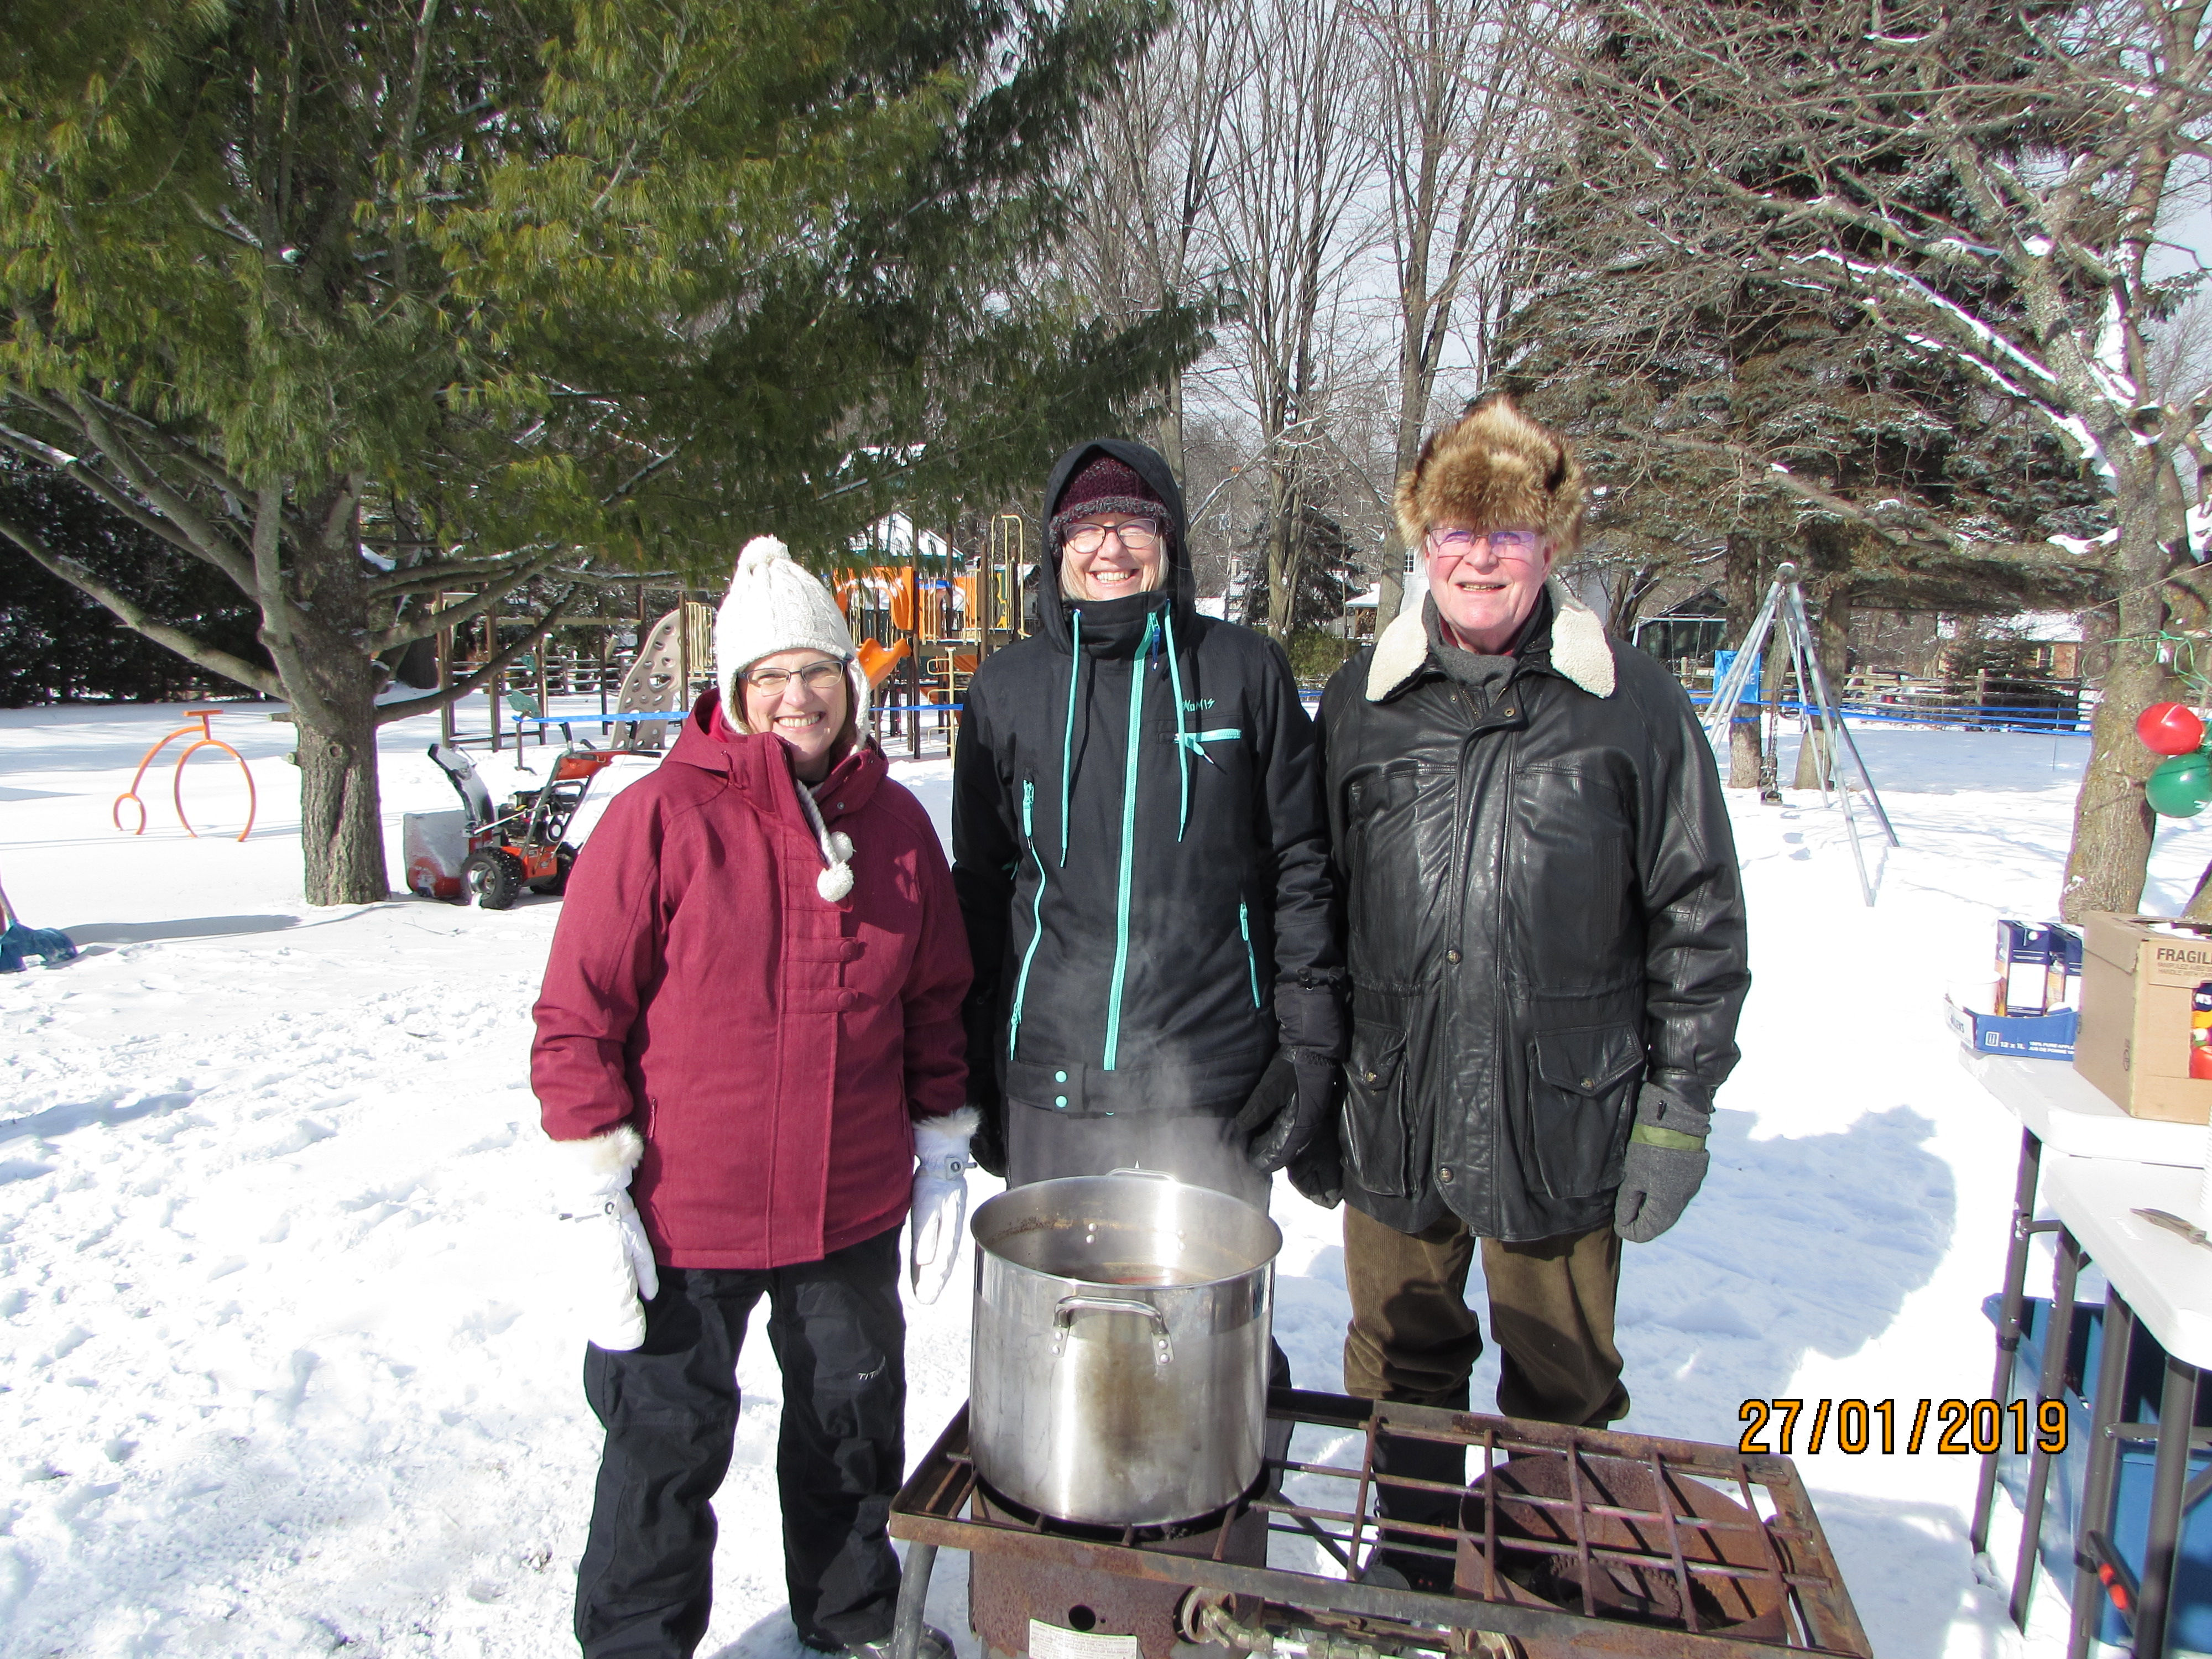 Group of 3 around hot apple cider pot